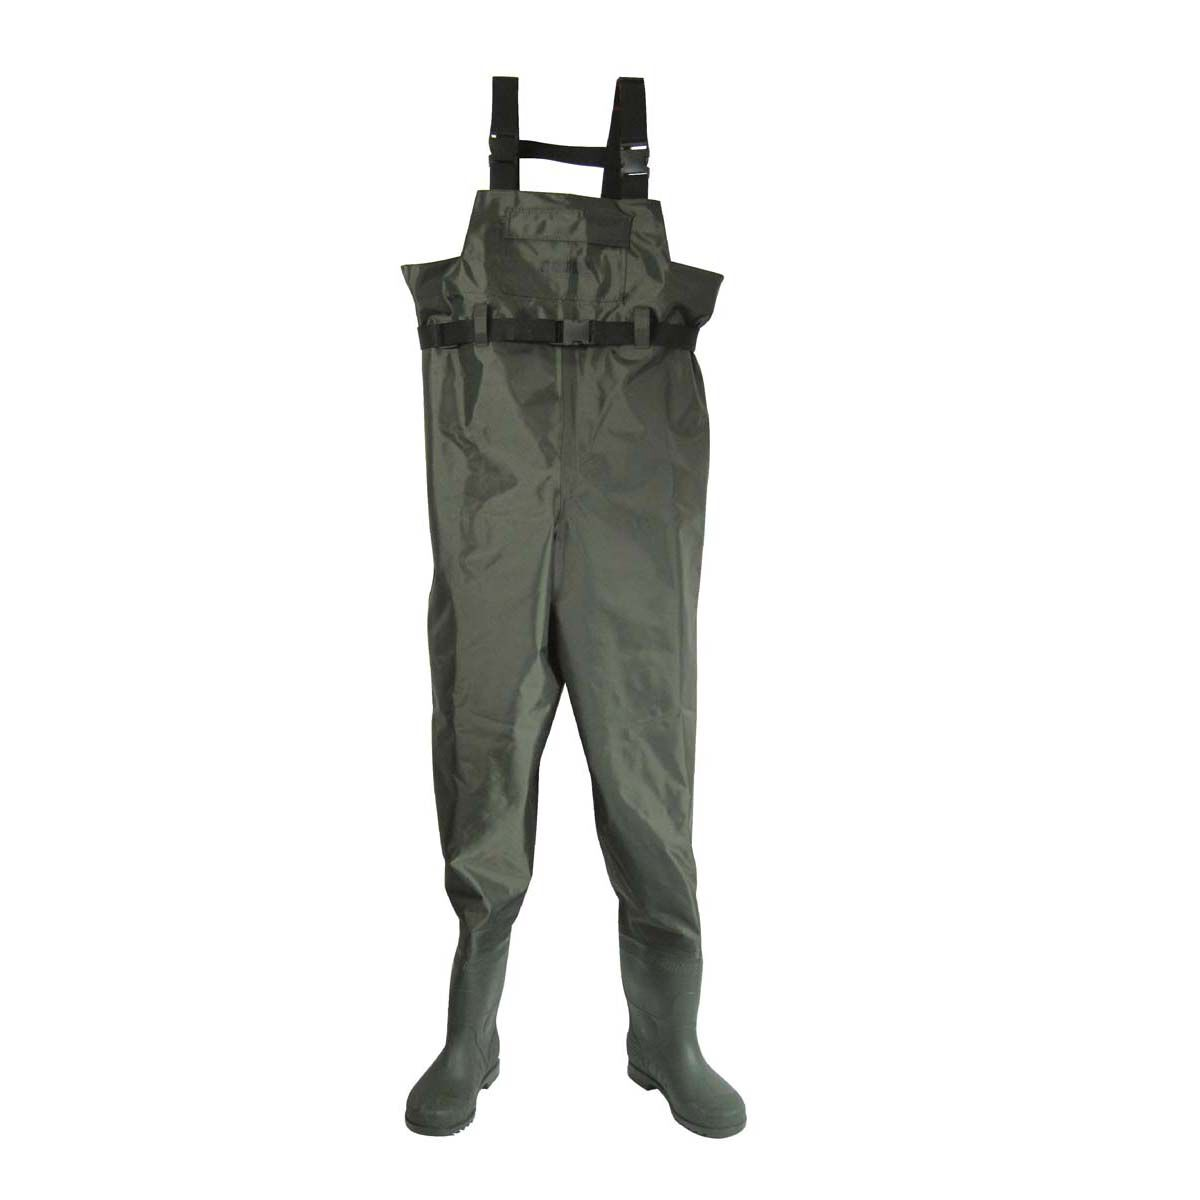 Pryml Chest-HI Nylon / PVC Waders  @ BCF